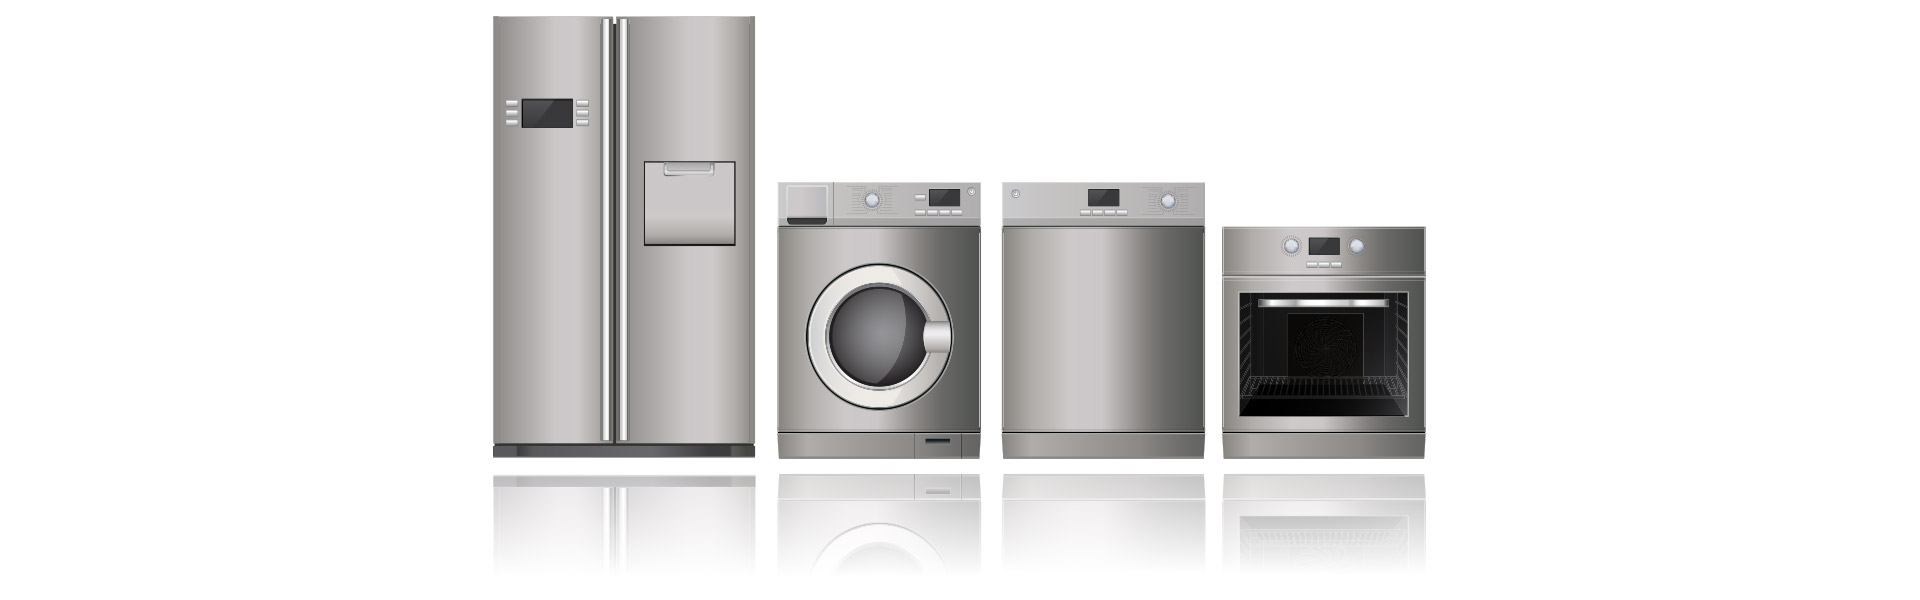 Washing Machines & Dishwashers